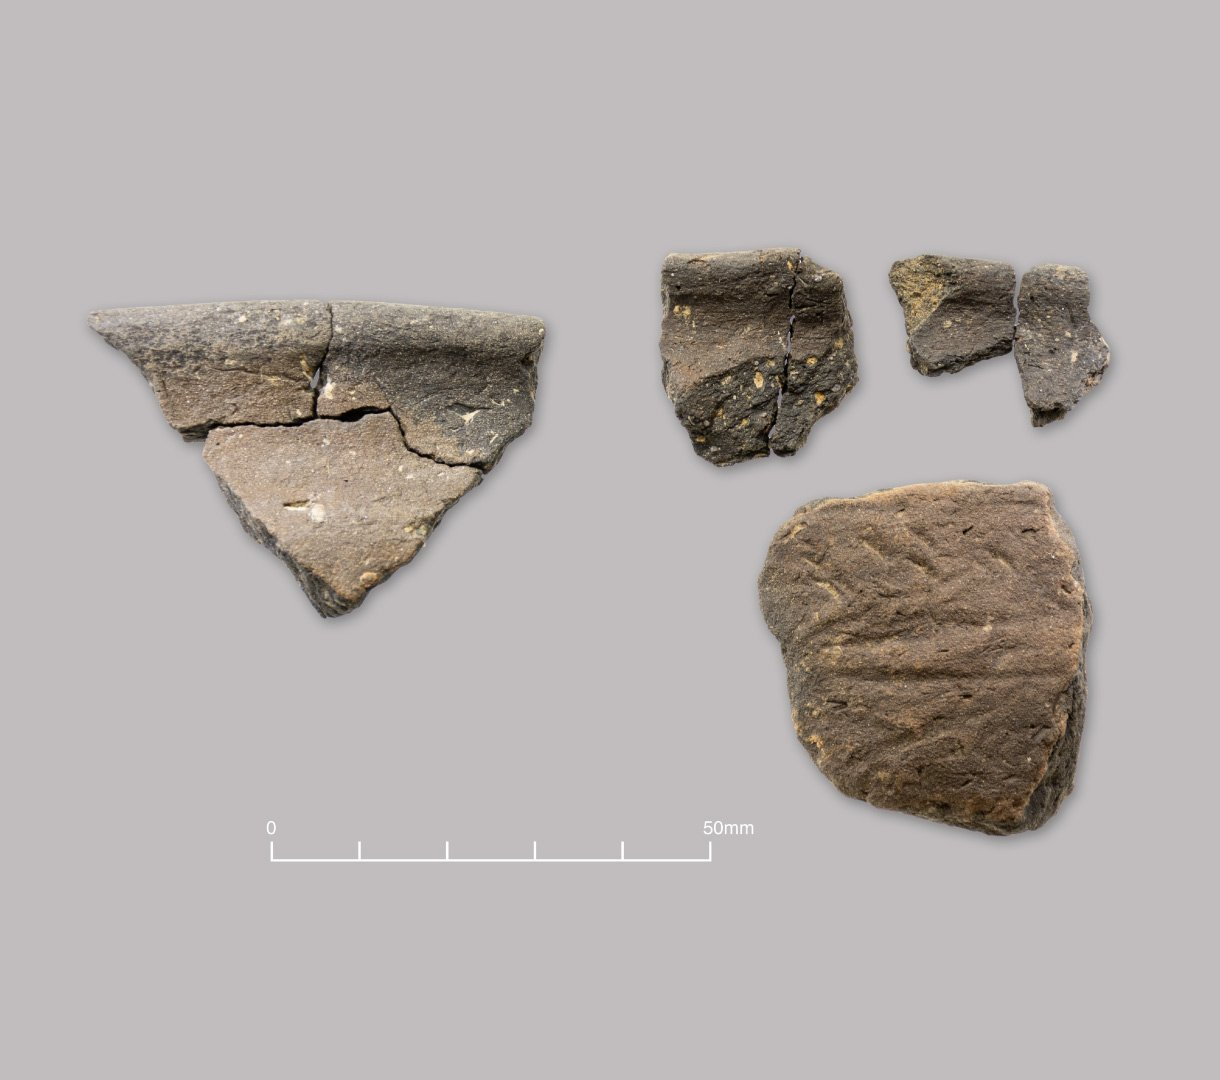 Handmade quartz-tempered pottery. Middle to Late Iron Age (c. 300–50 BC)